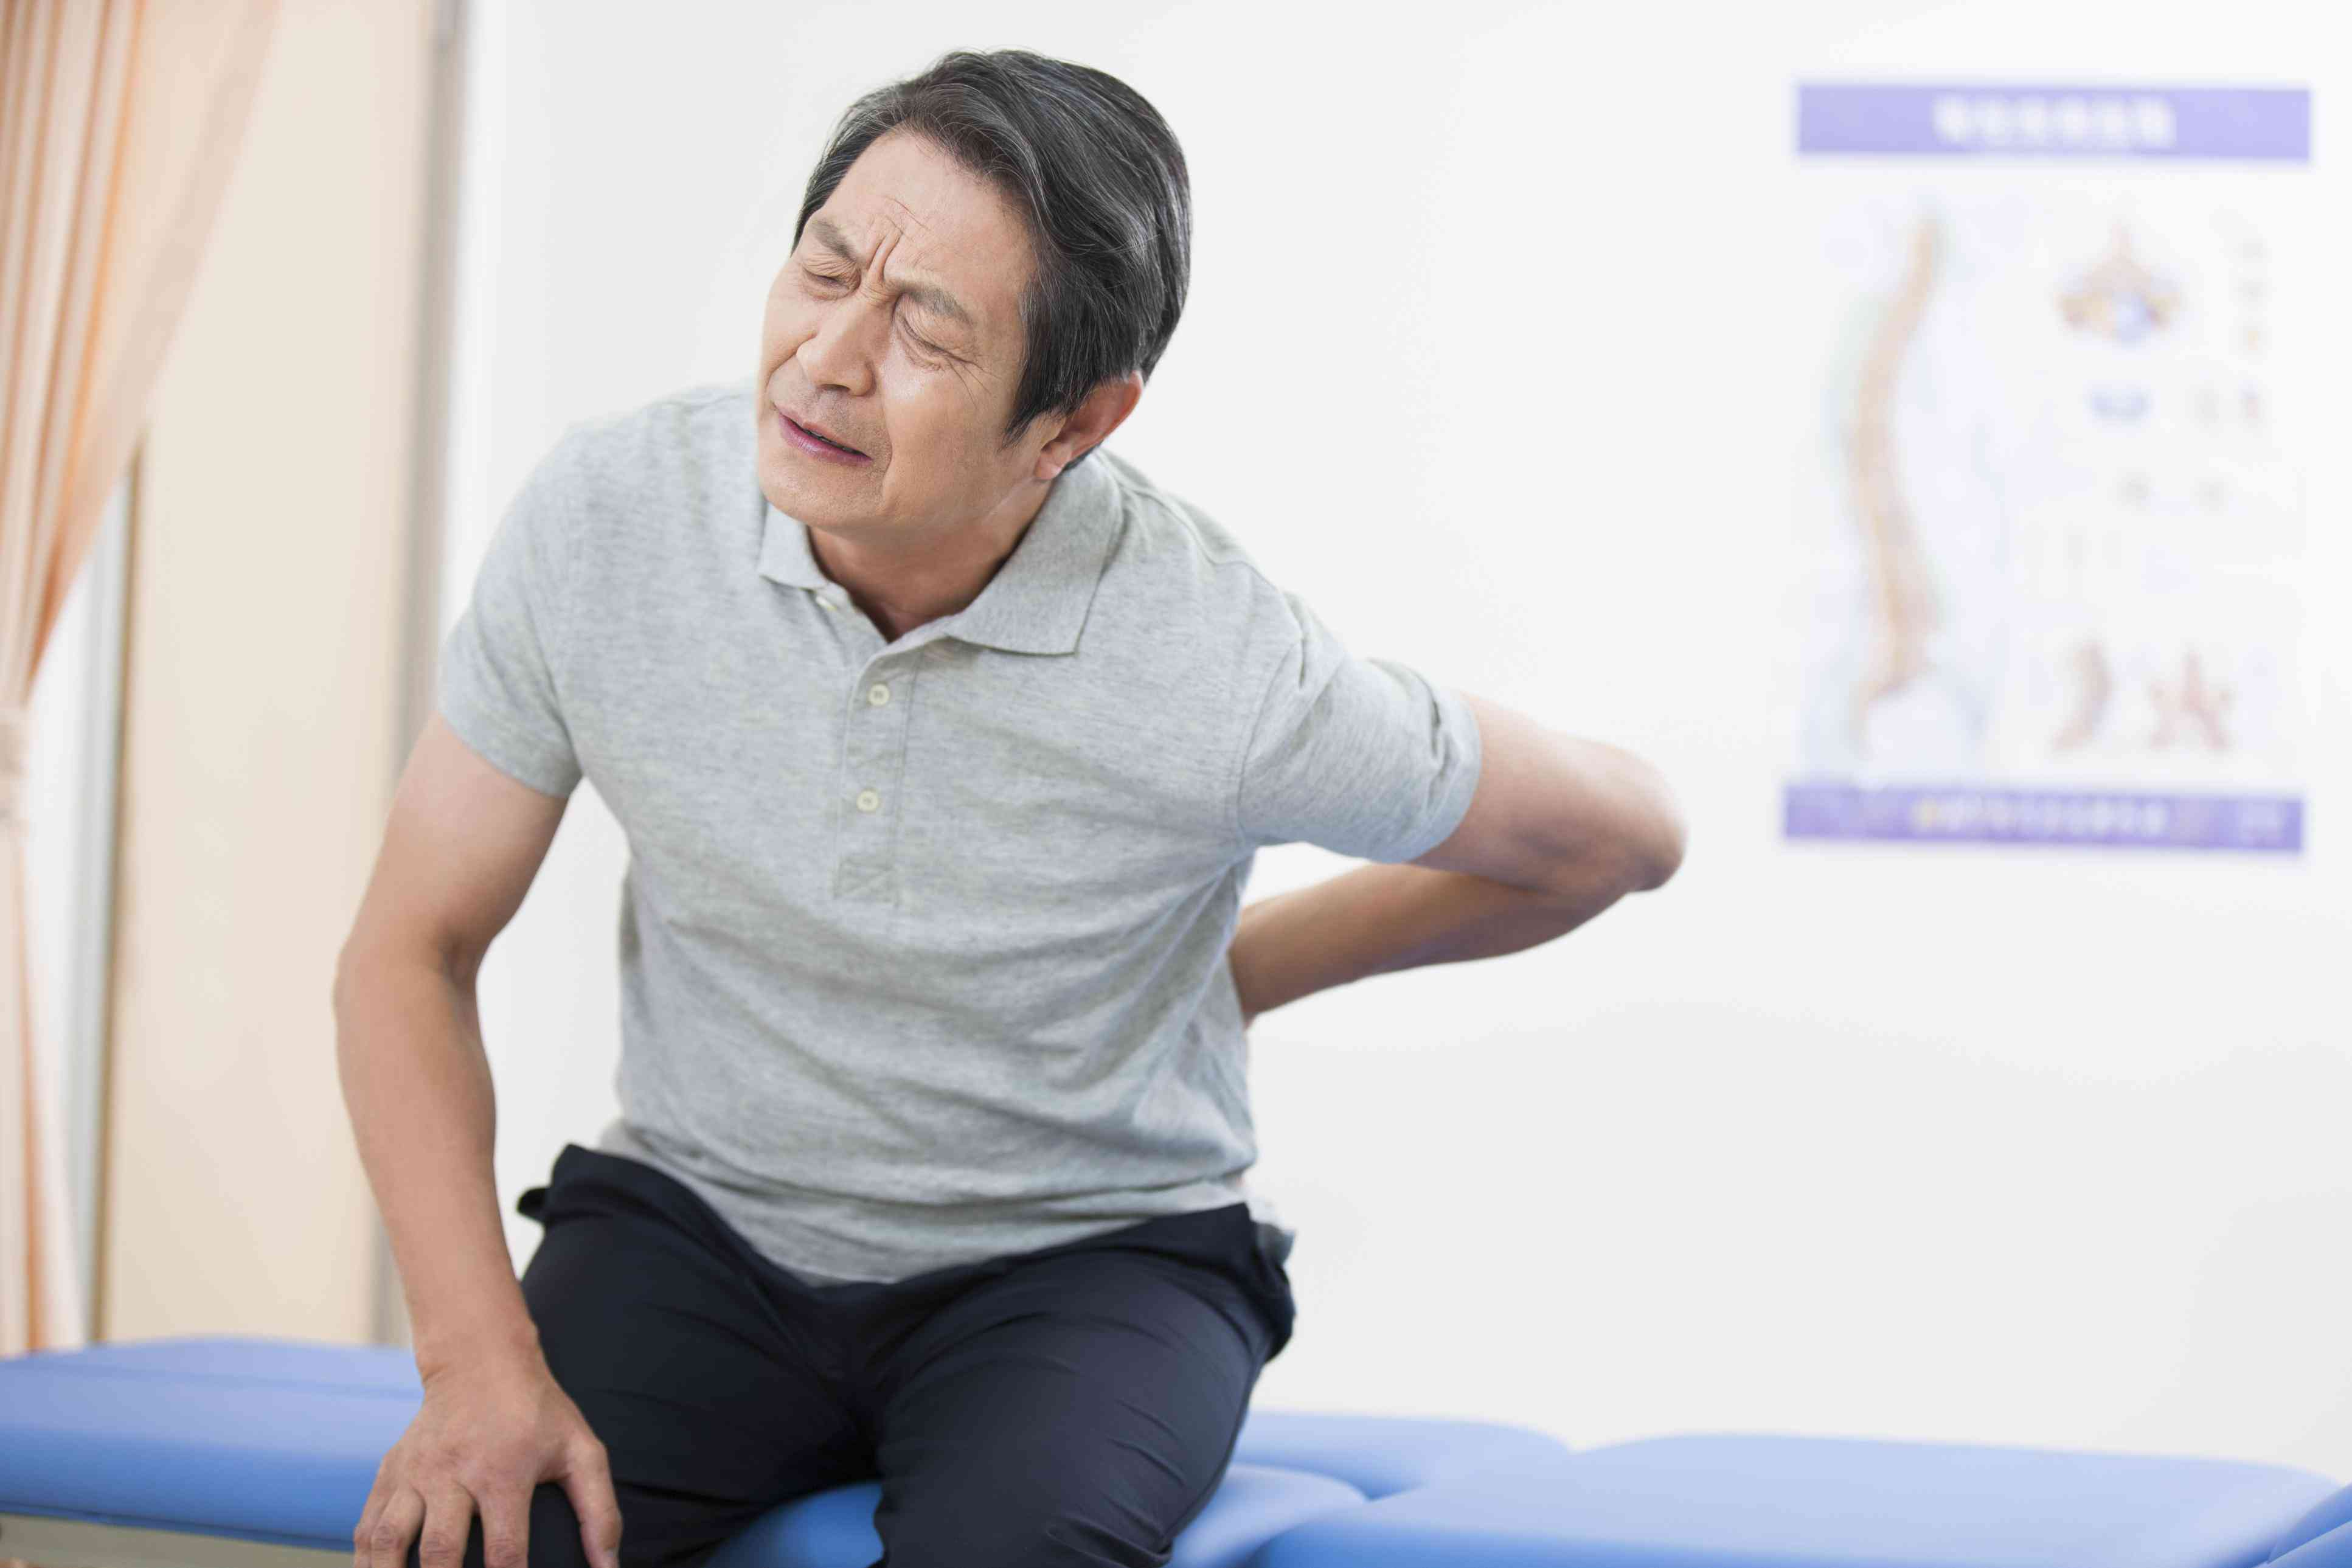 Man in pain holding his back